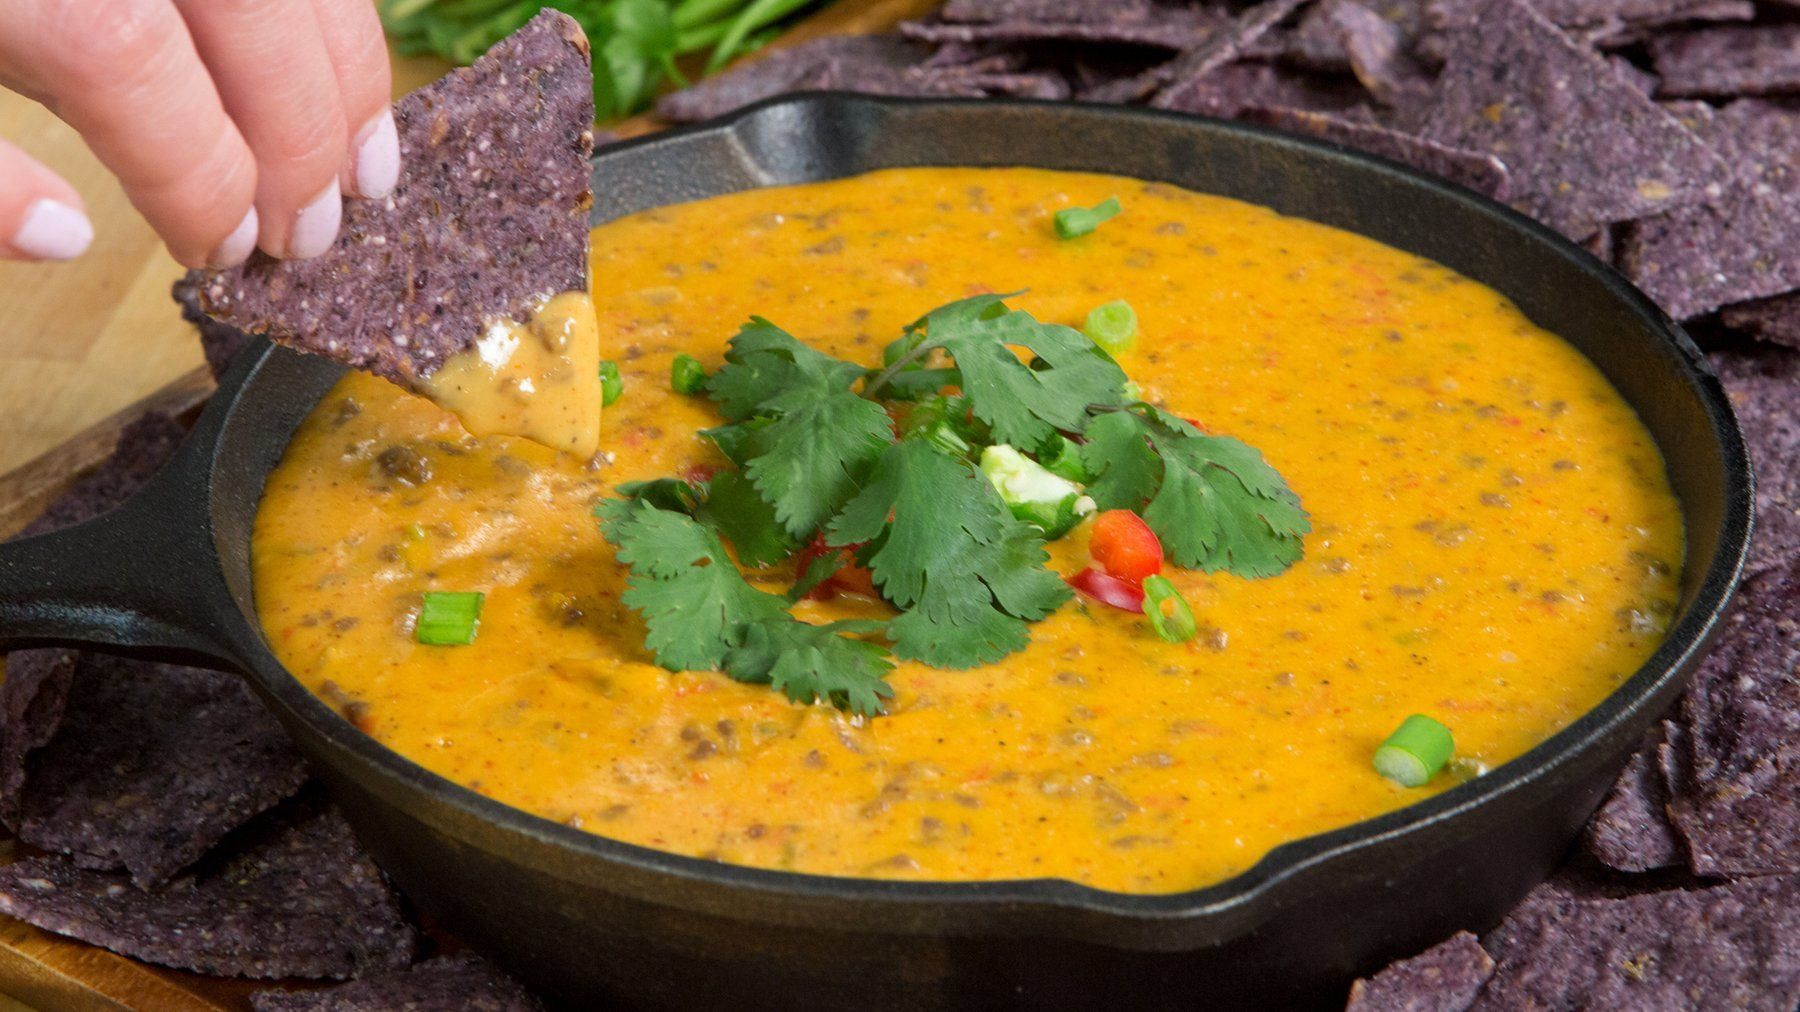 Hack Chili's Famous Skillet Queso Dip!: What's one of the best parts about getting a group of friends and heading to Chili's for dinner?